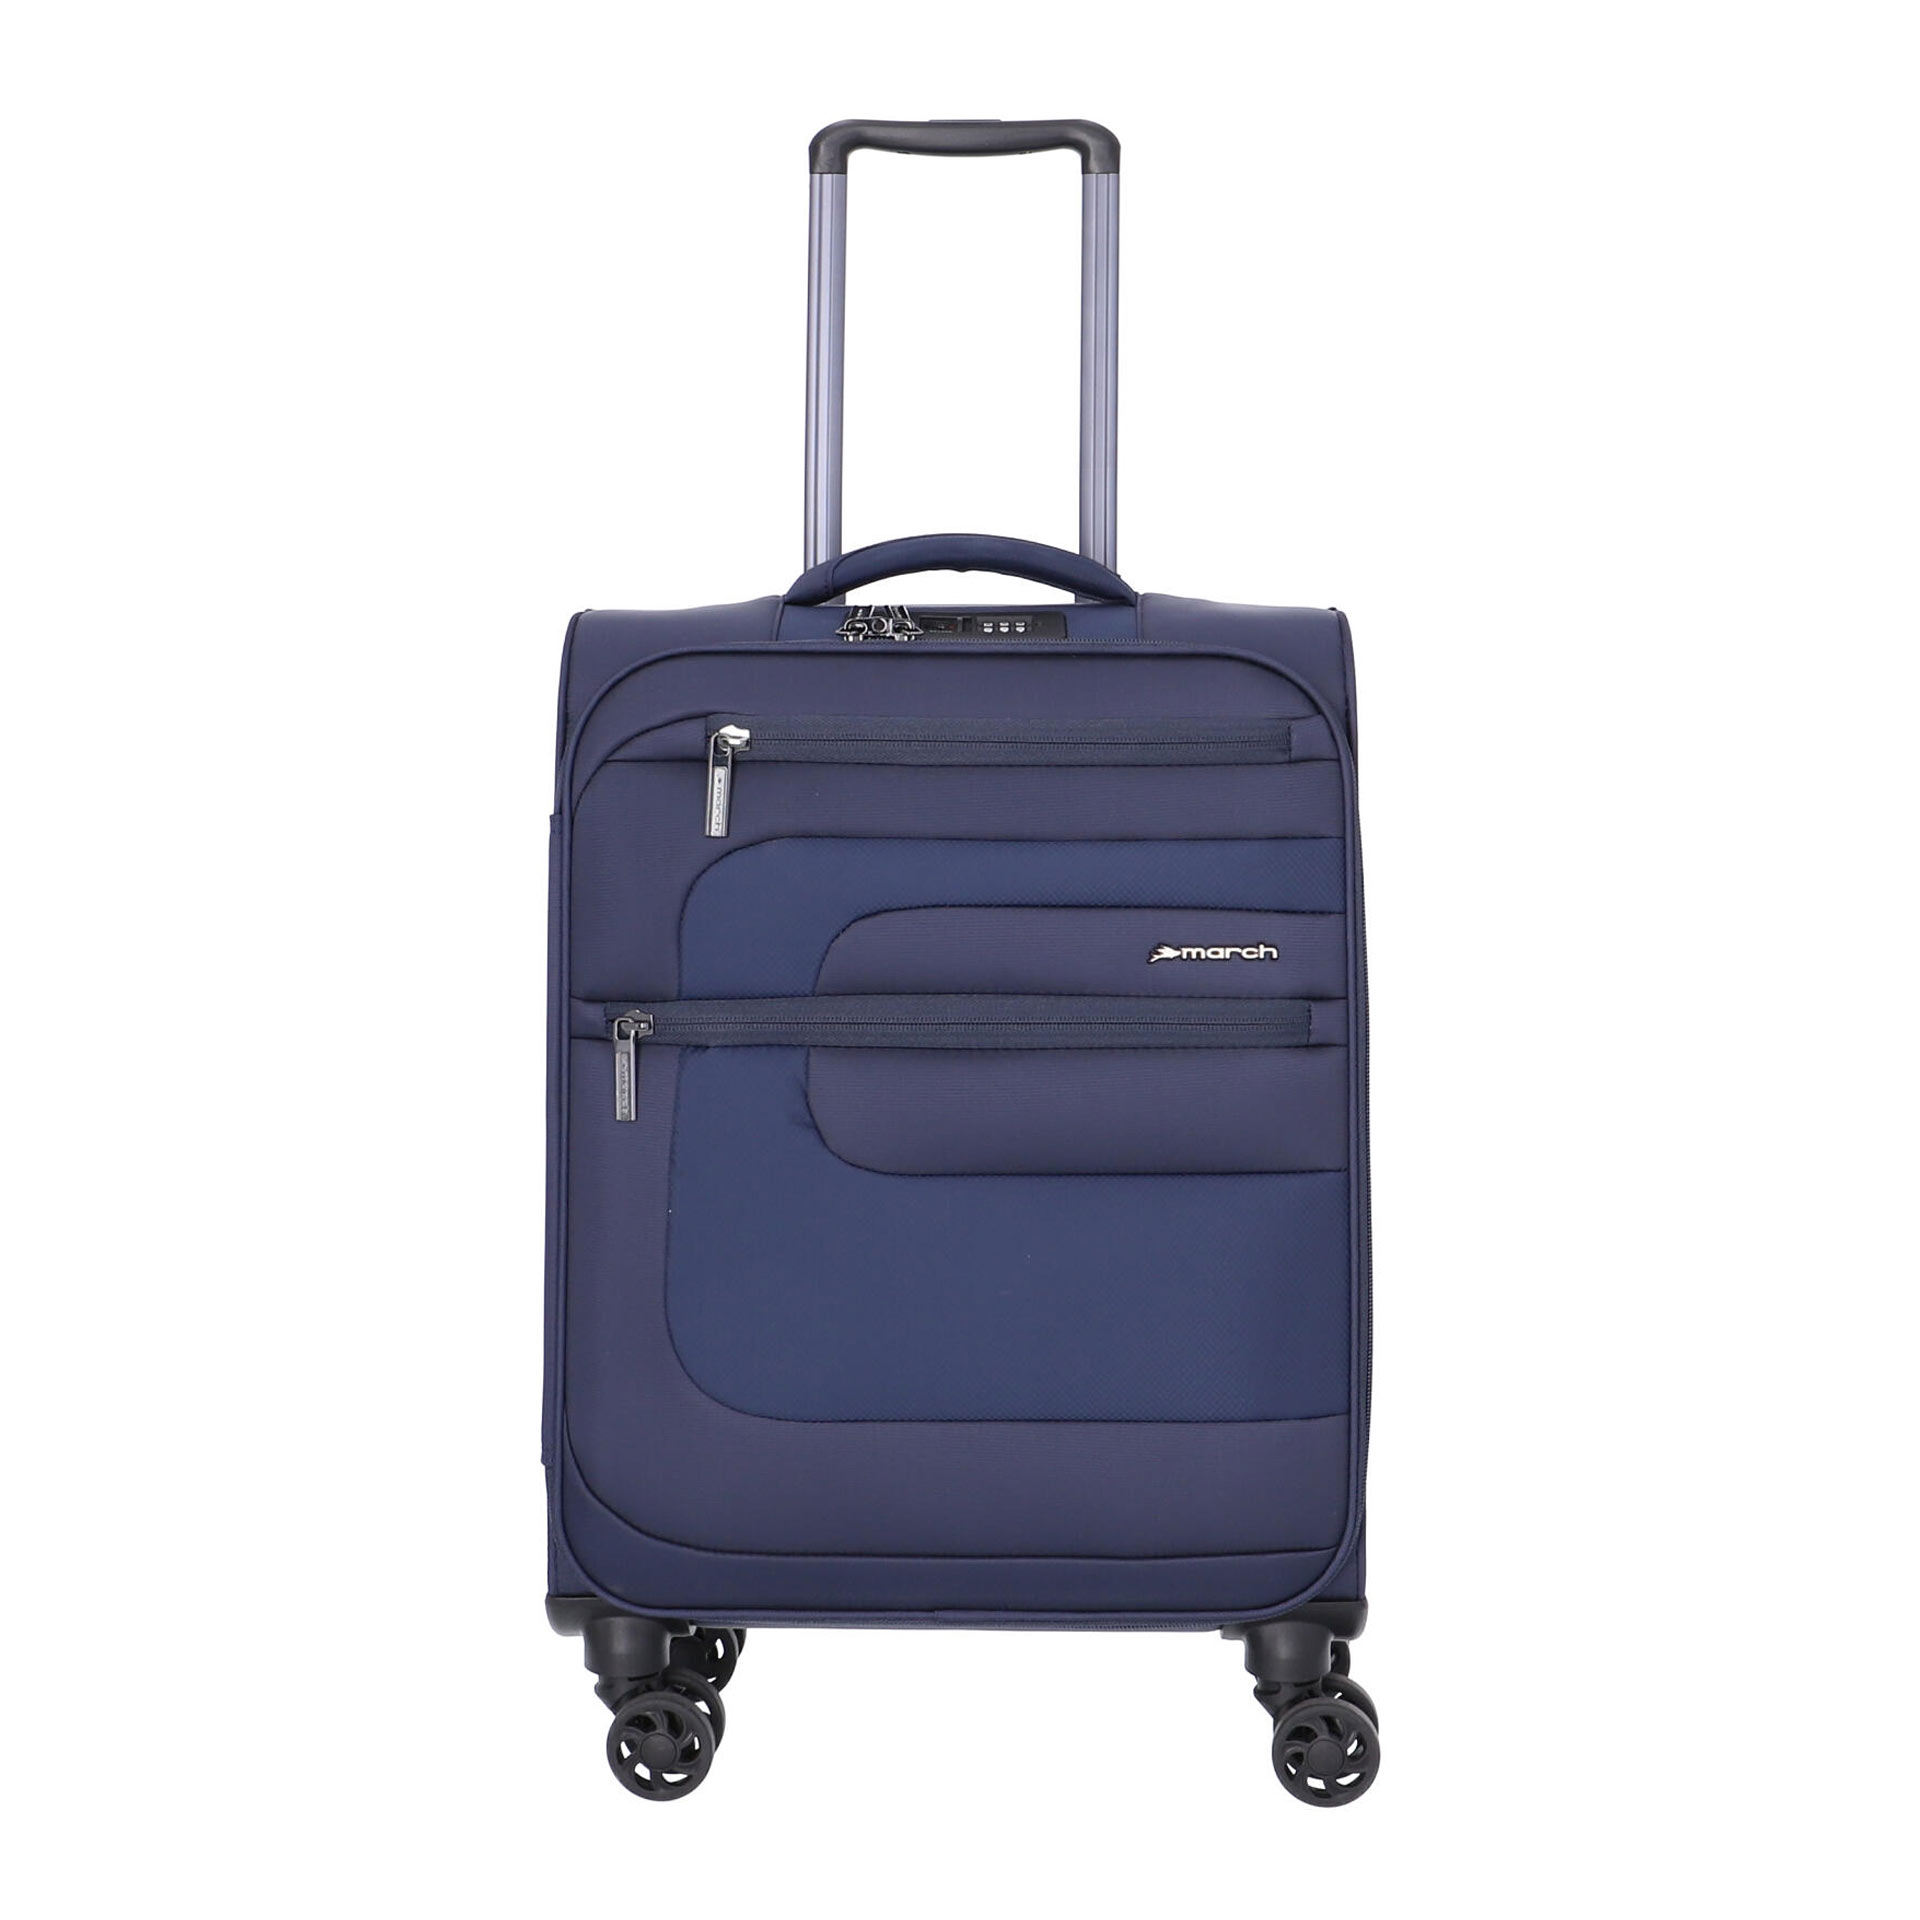 March Classic 4-Rad Trolley S  navy blue